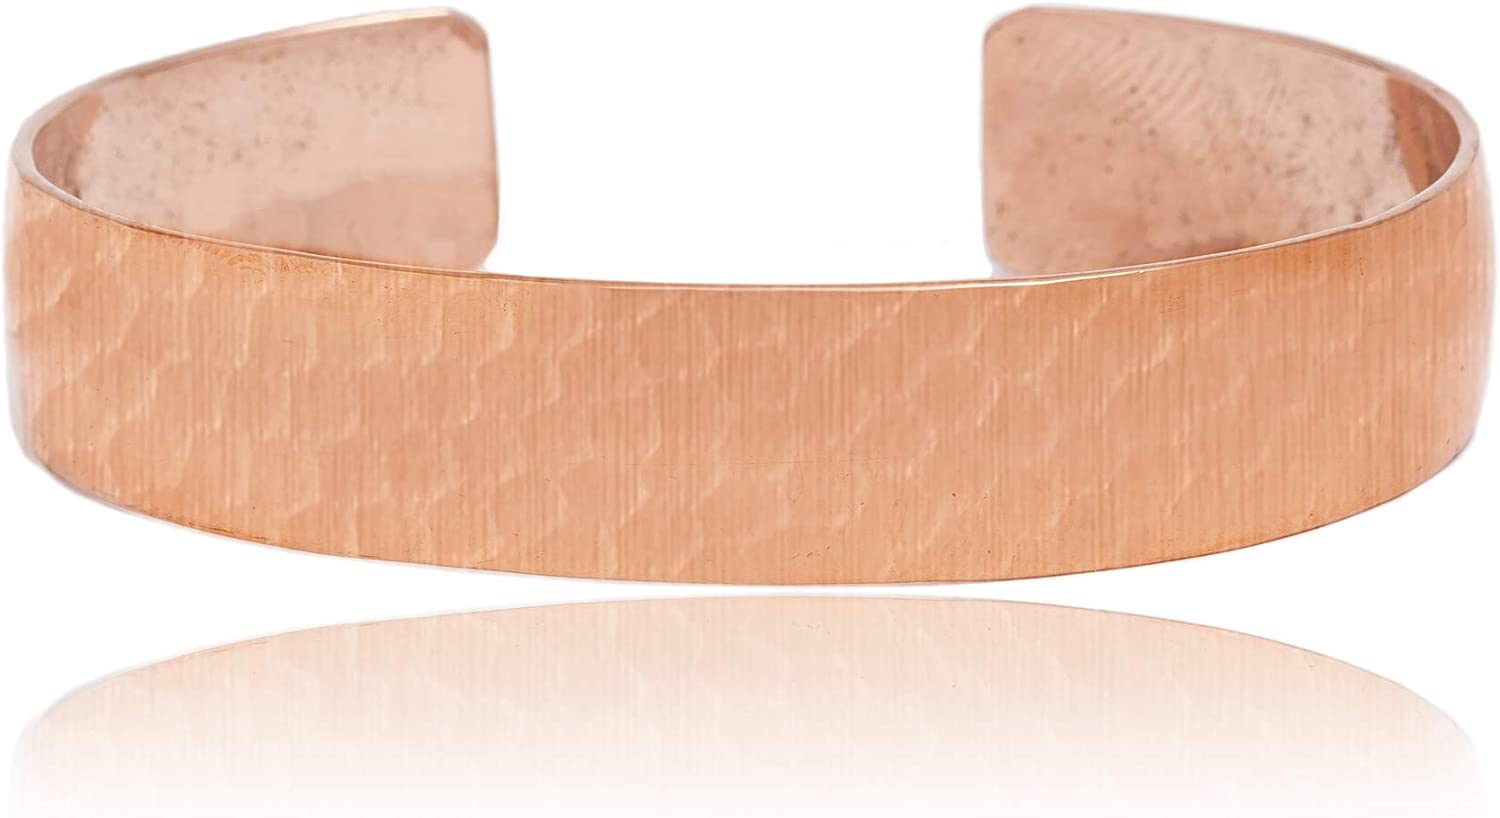 $100Tag Copper Certified Navajo Native American Hammered Cuff Bracelet 12875 Made by Loma Siiva